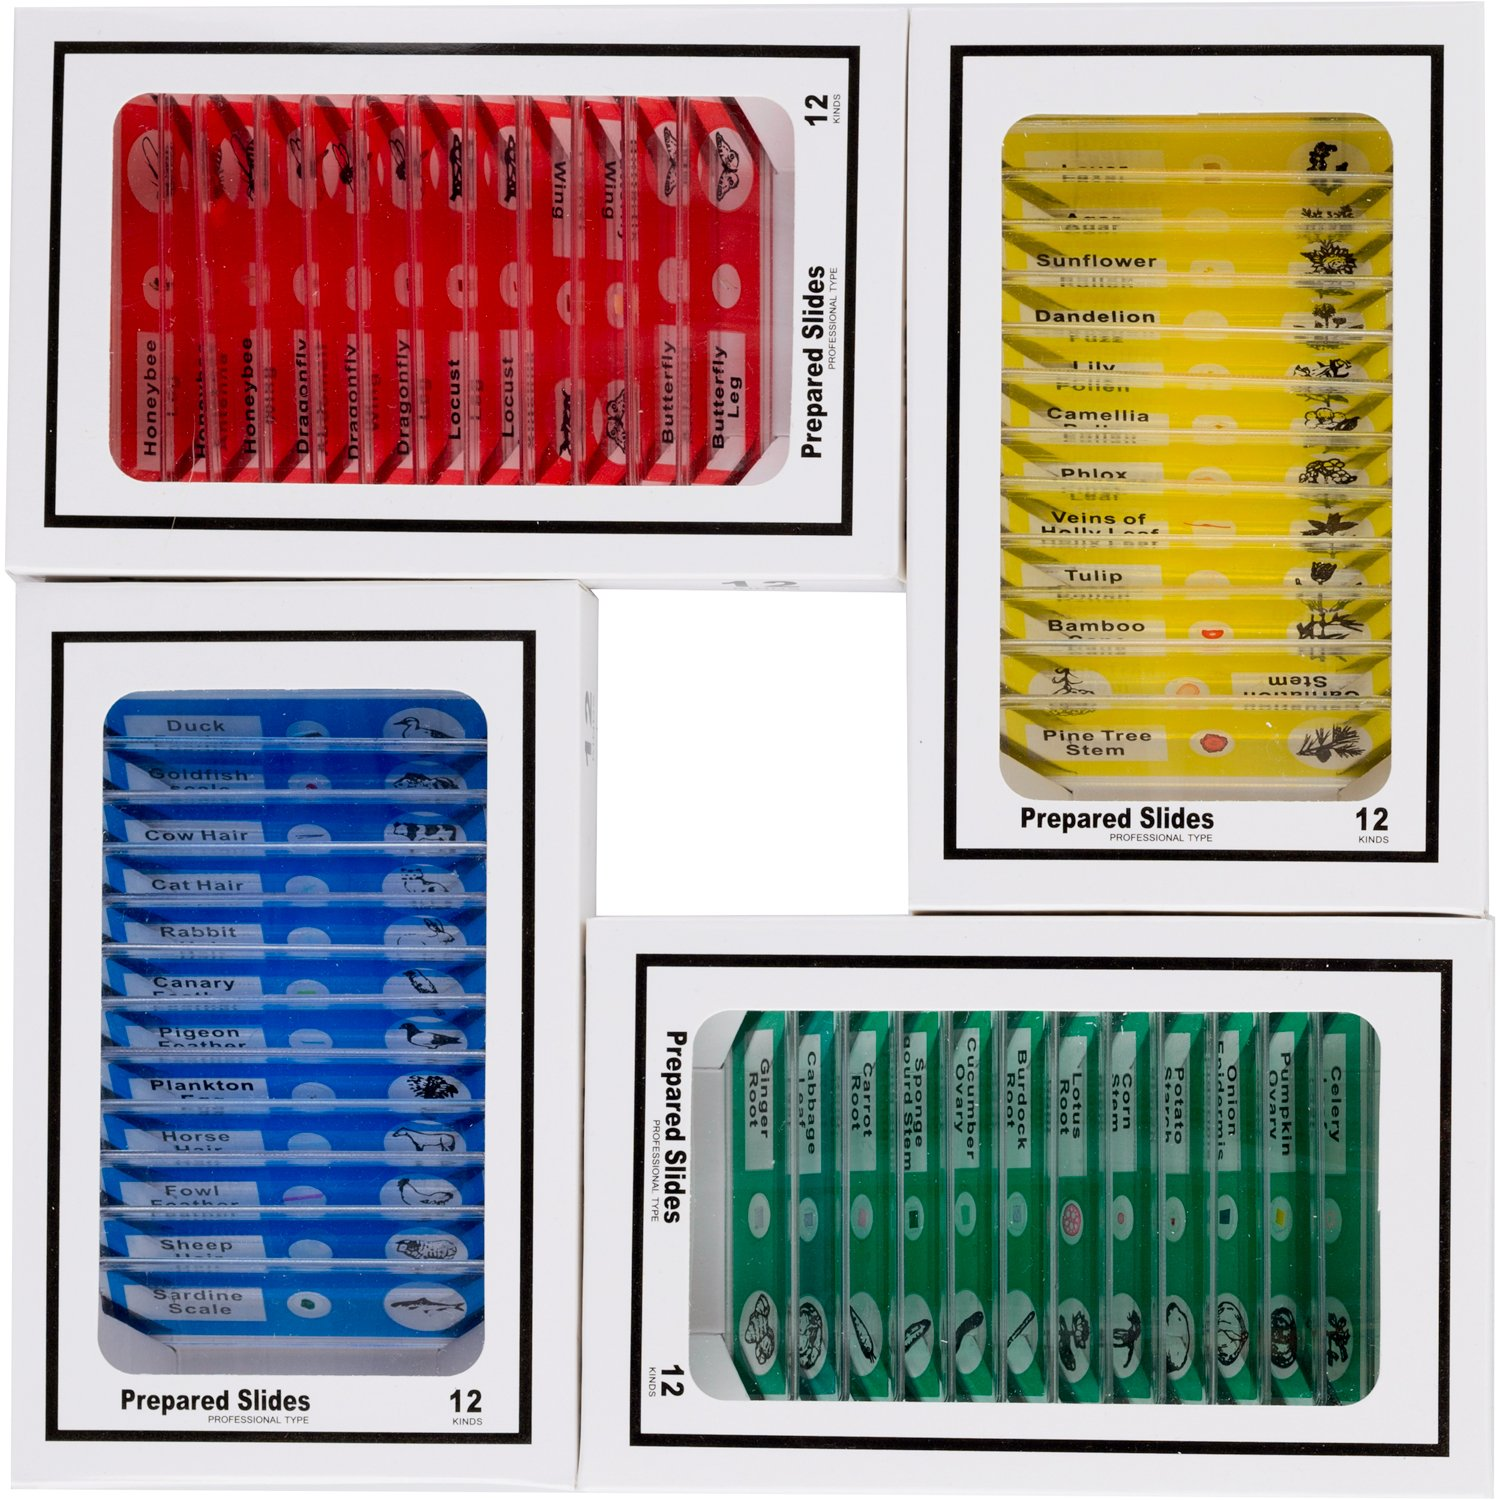 AMSCOPE-KIDS 48pcs Kids Plastic Prepared Microscope Slides of Animals Insects Plants Flowers Sample Specimens for Stereo Microscopes